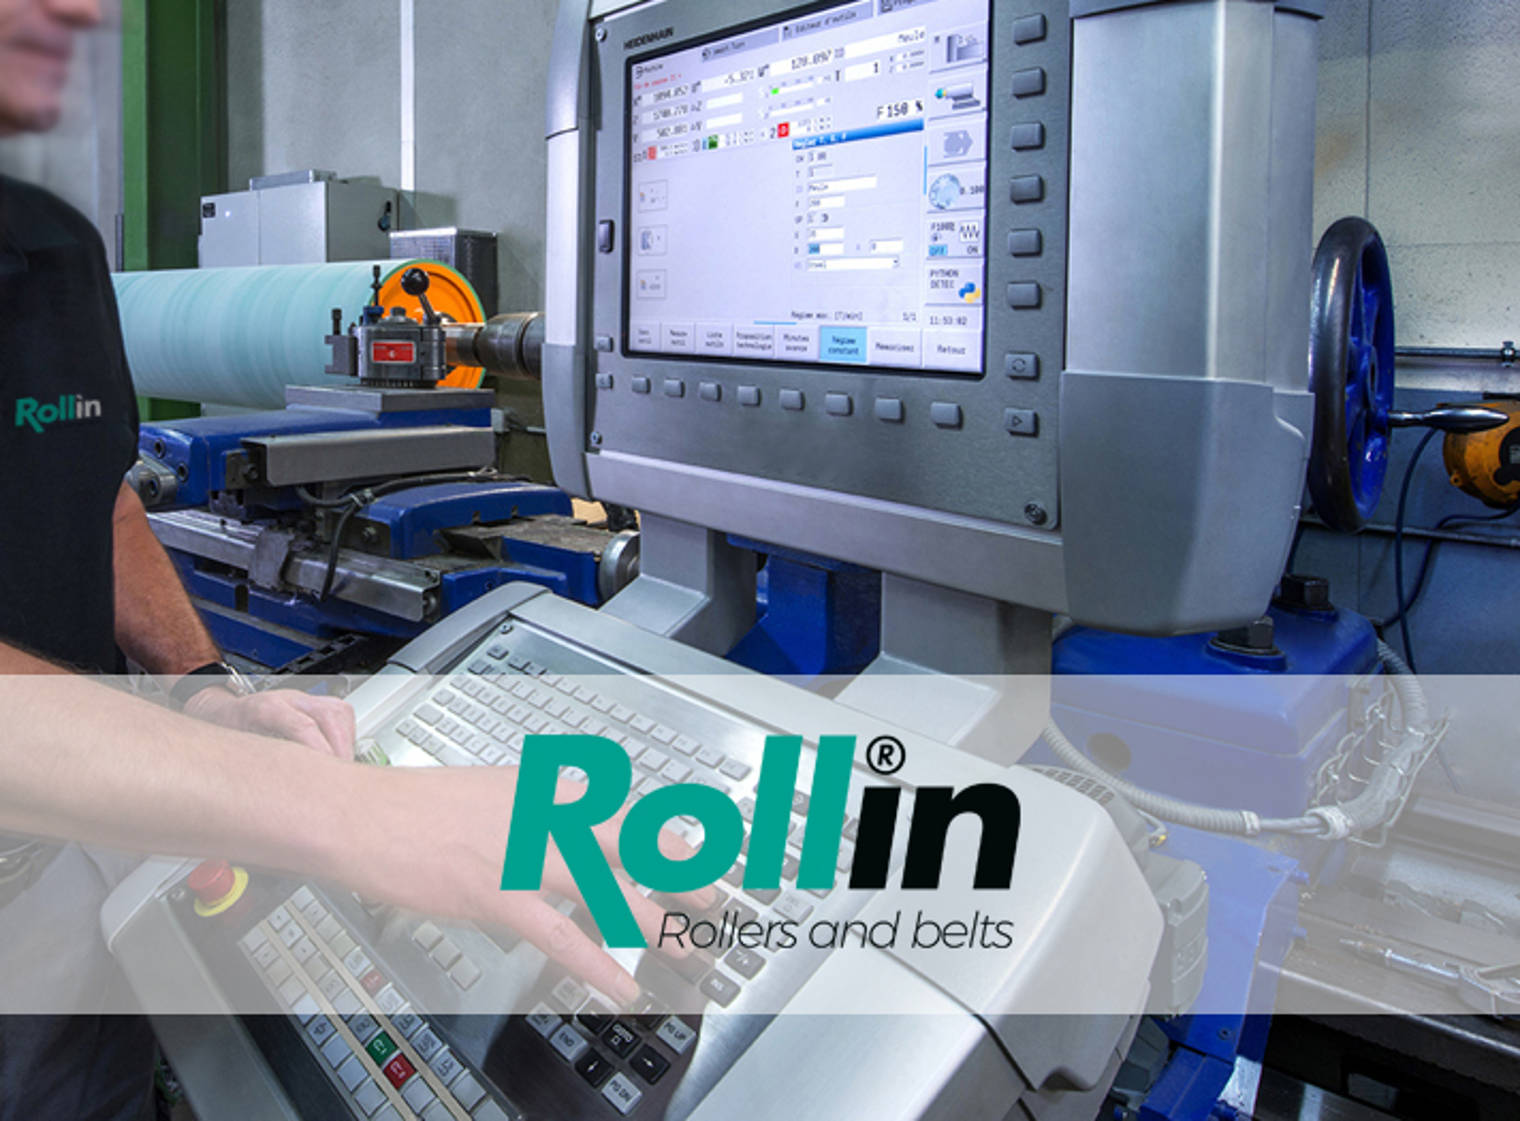 Hannecard is delighted to announce the successful acquisition of Rollin Rollers and Belts